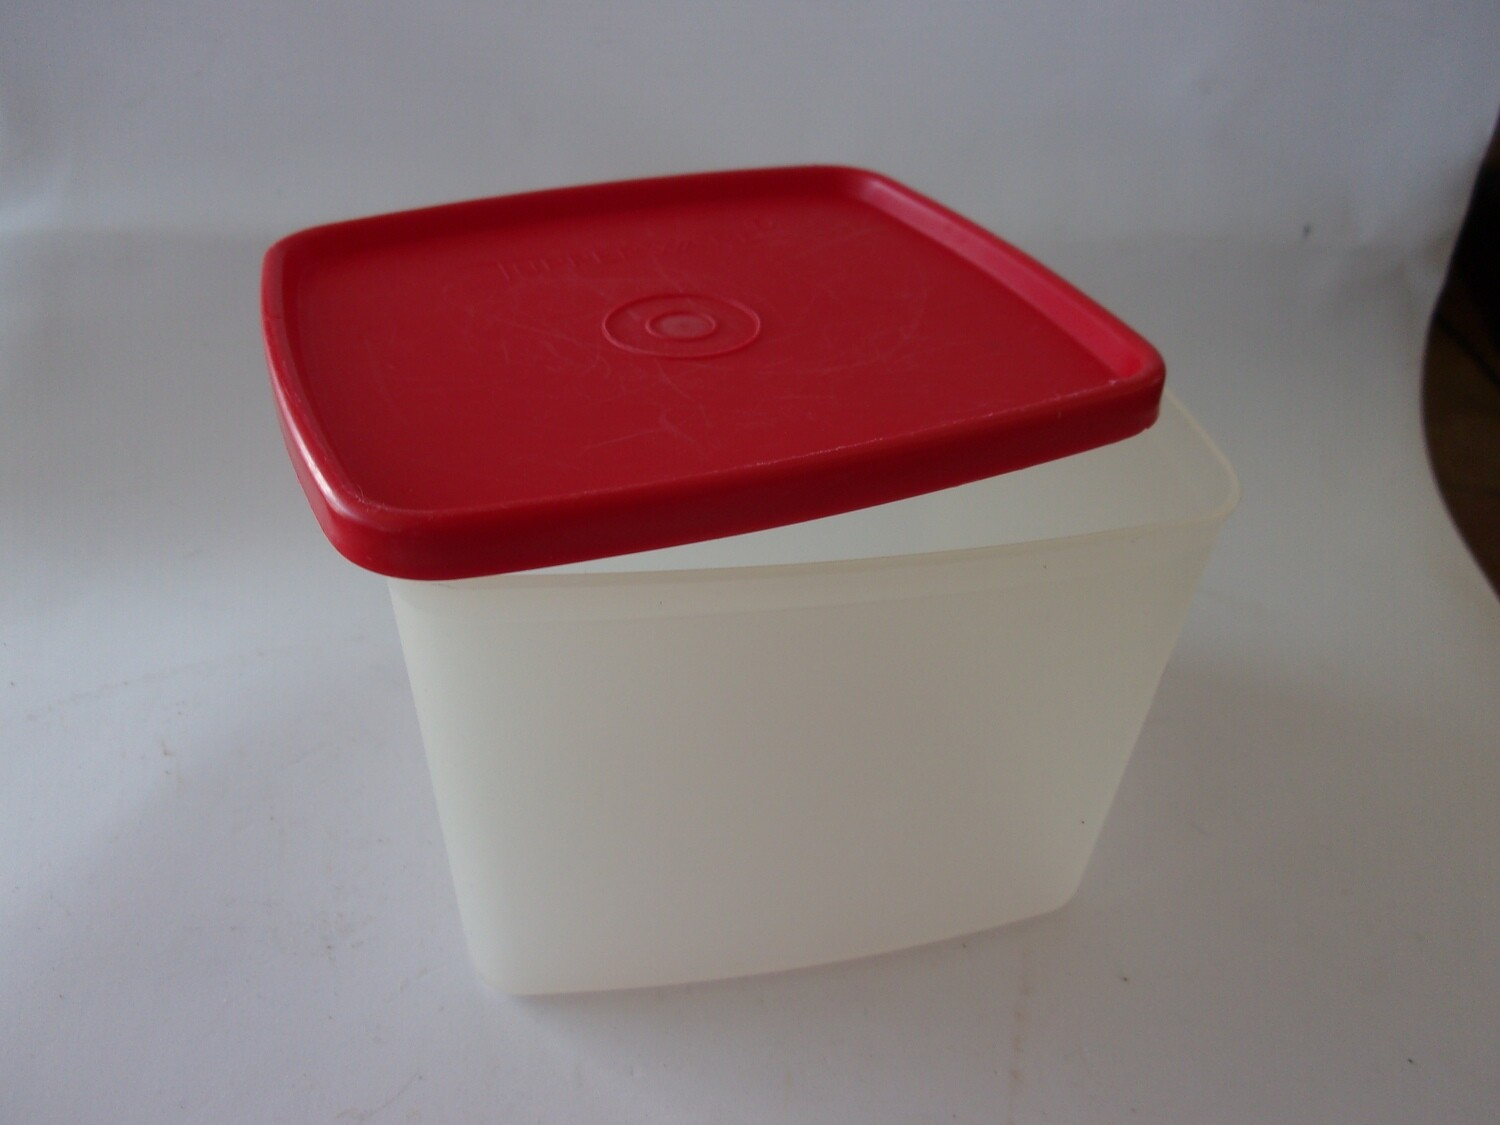 New Vintage Tupperware Freezer Square Rounds Container, Red Lid